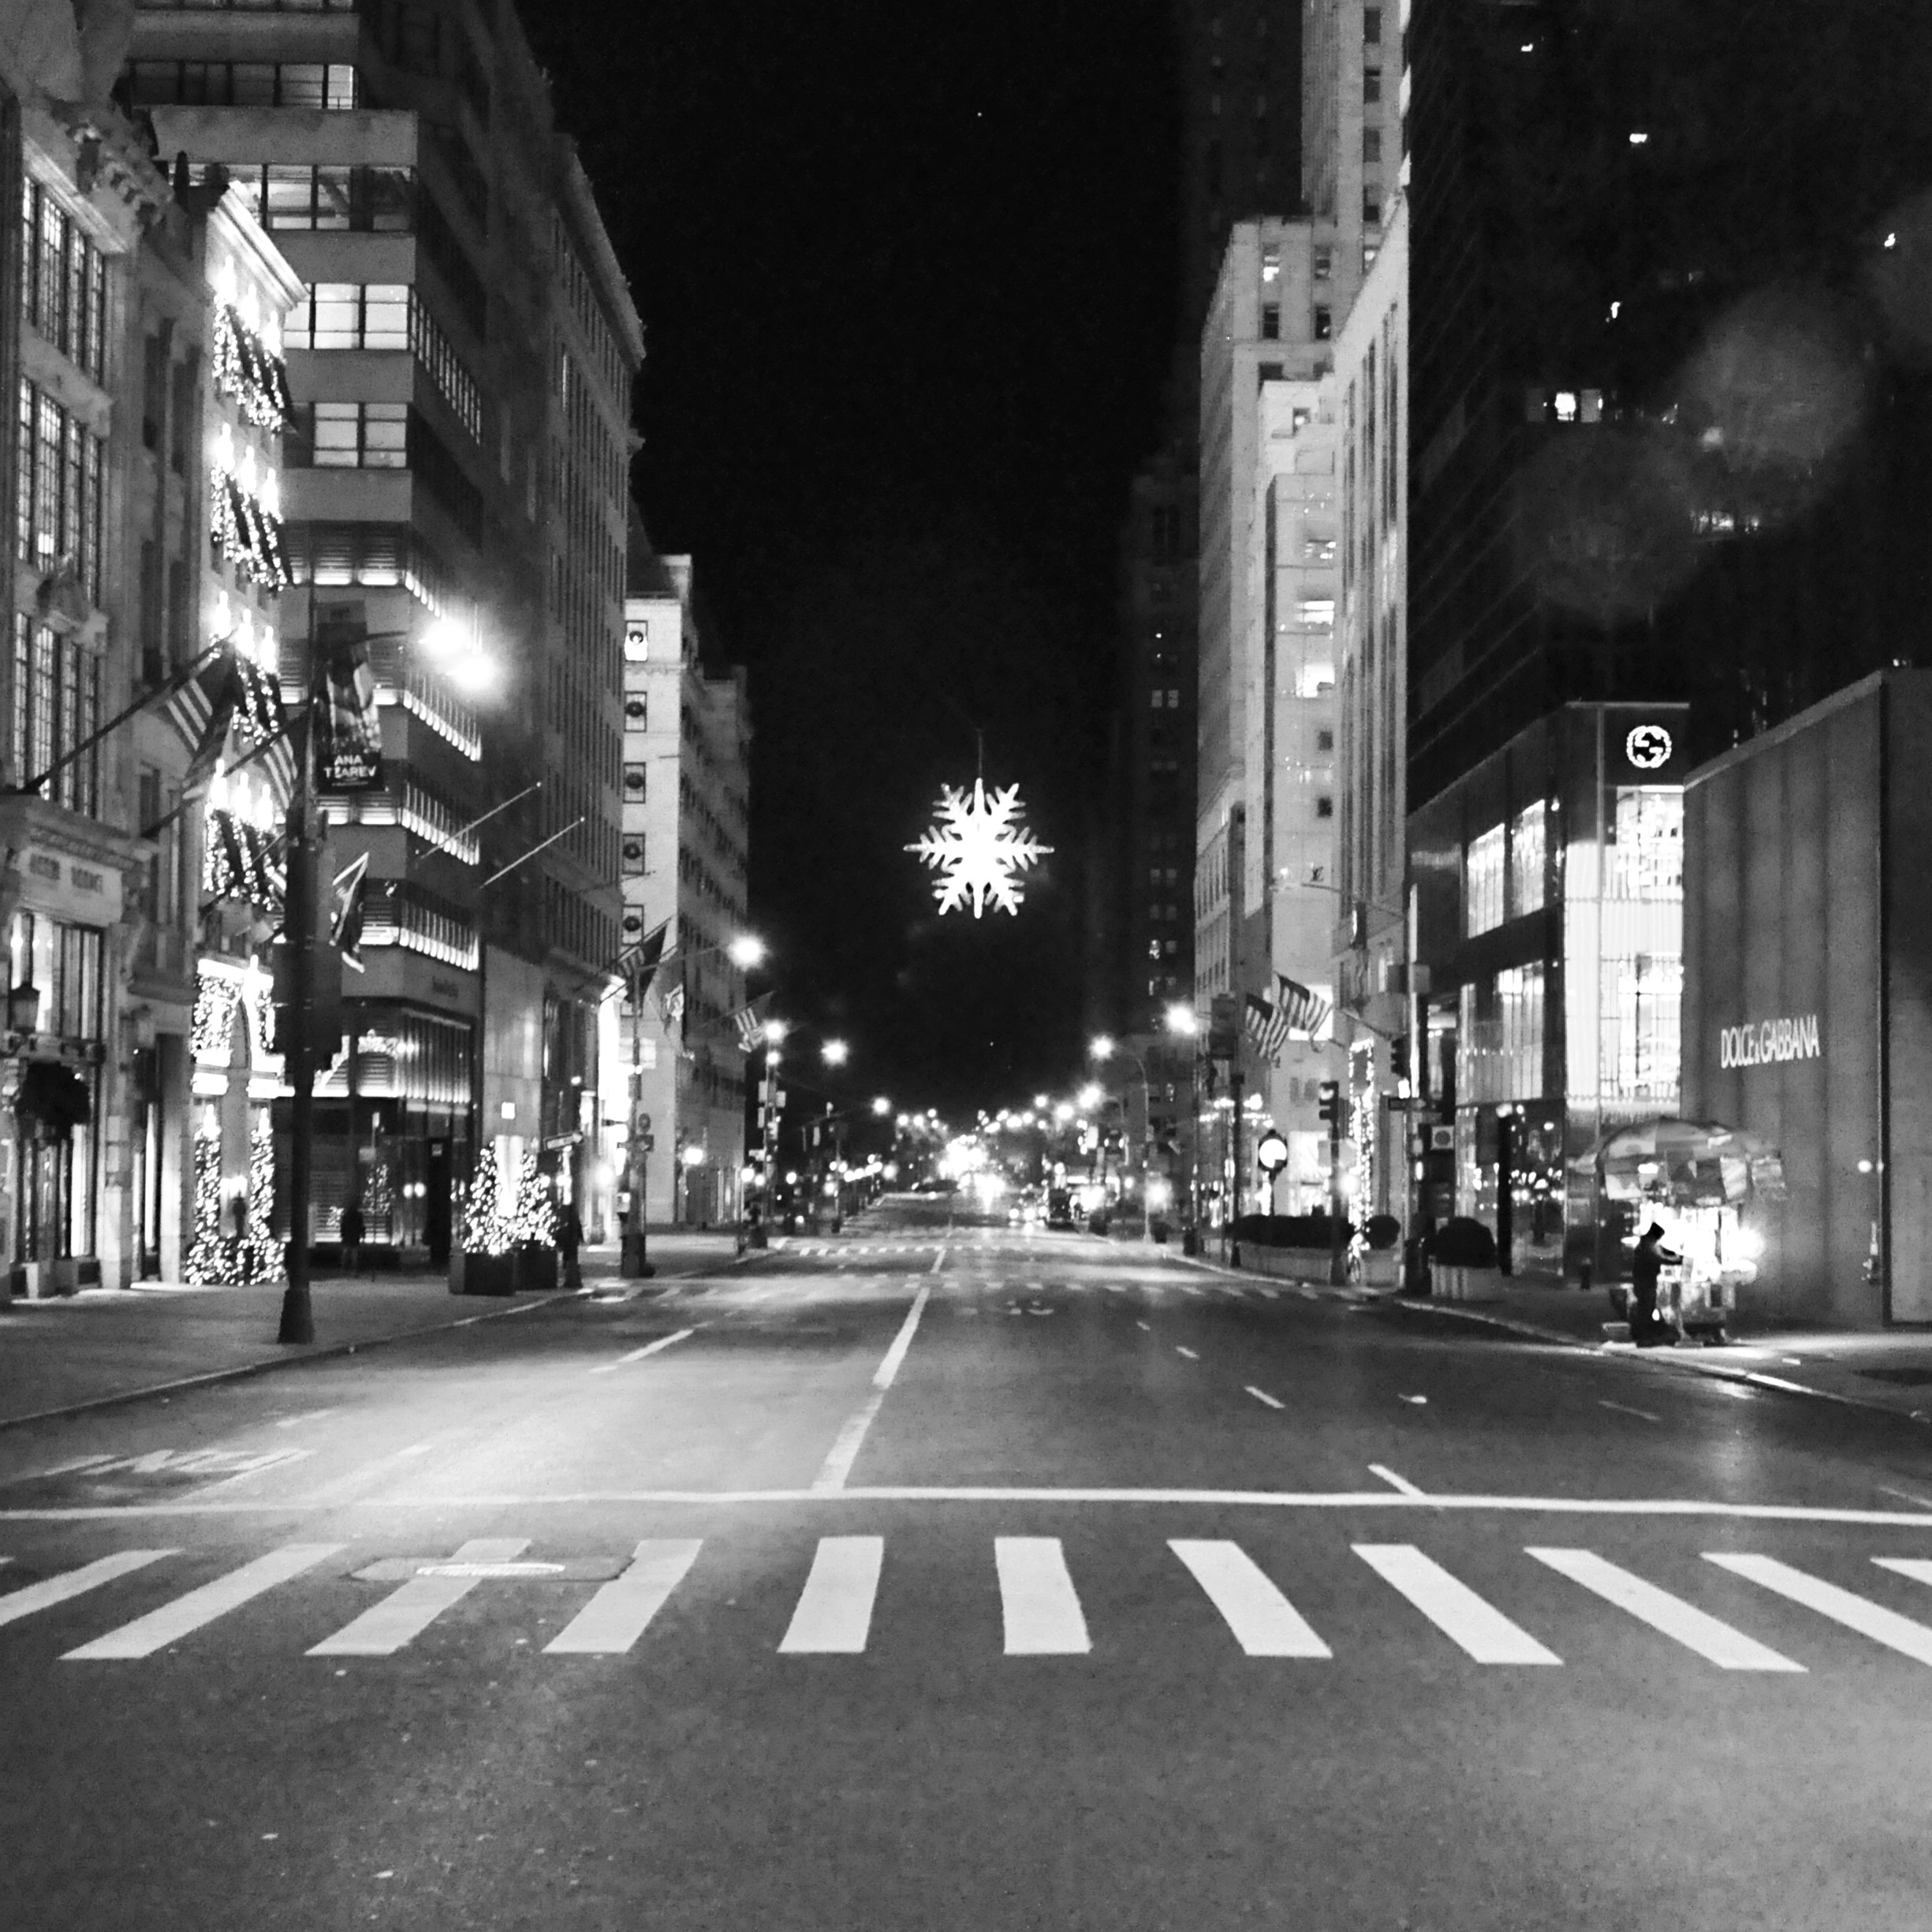 Christmas on 5th Ave